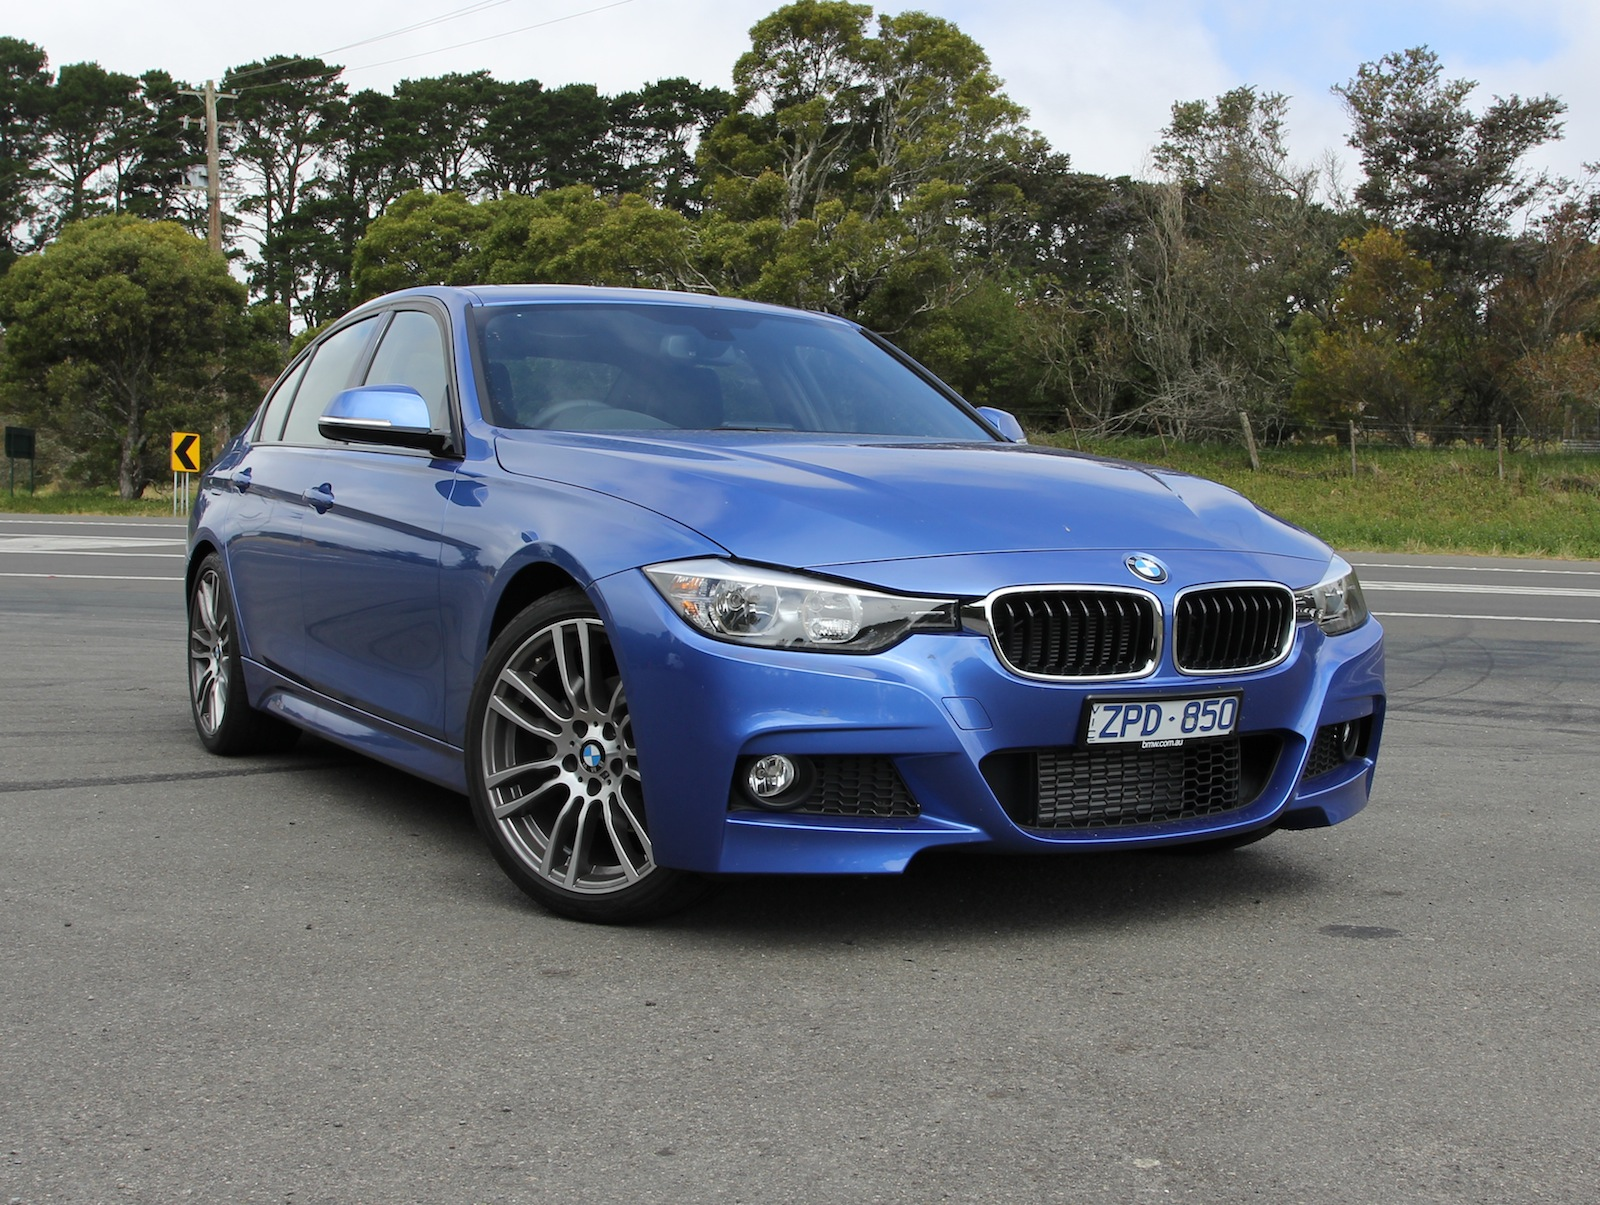 2014 bmw 3 series review 316i m sport photos caradvice. Black Bedroom Furniture Sets. Home Design Ideas